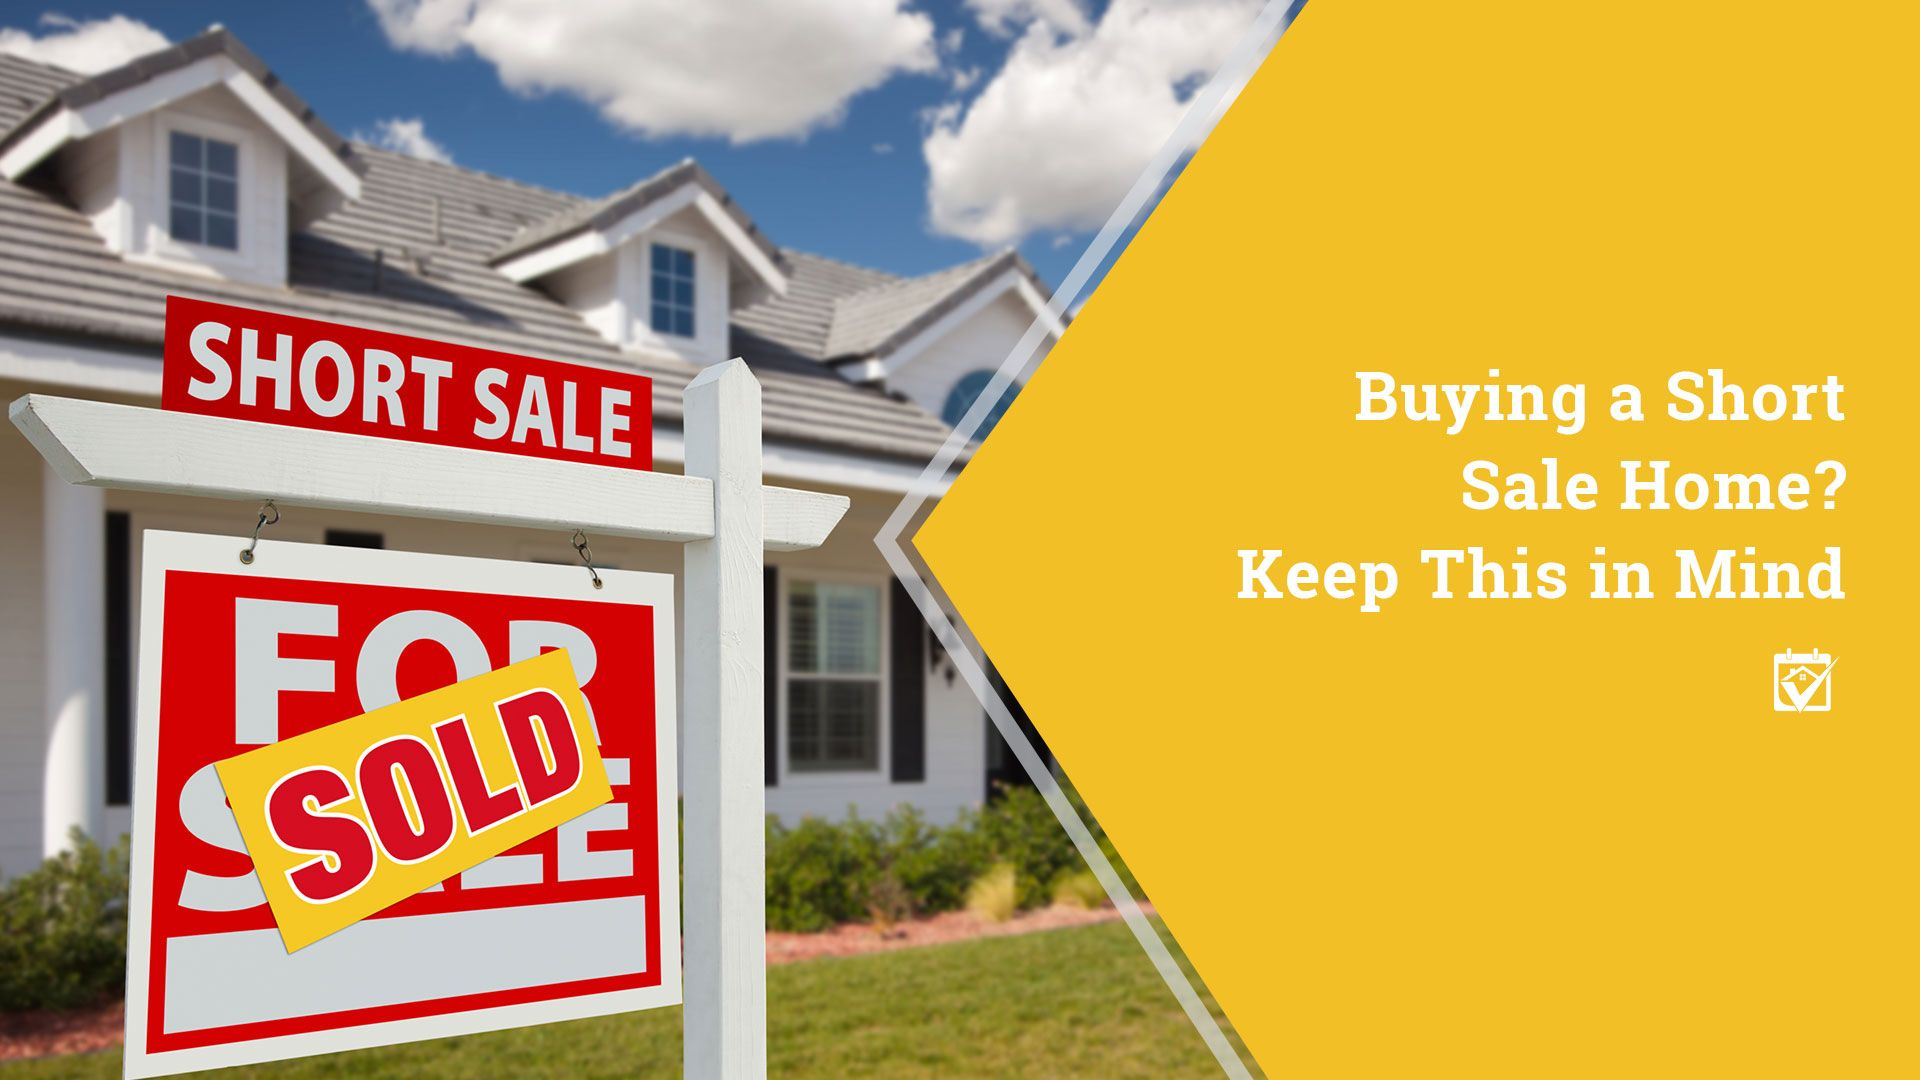 how to buy a house that is a short sale